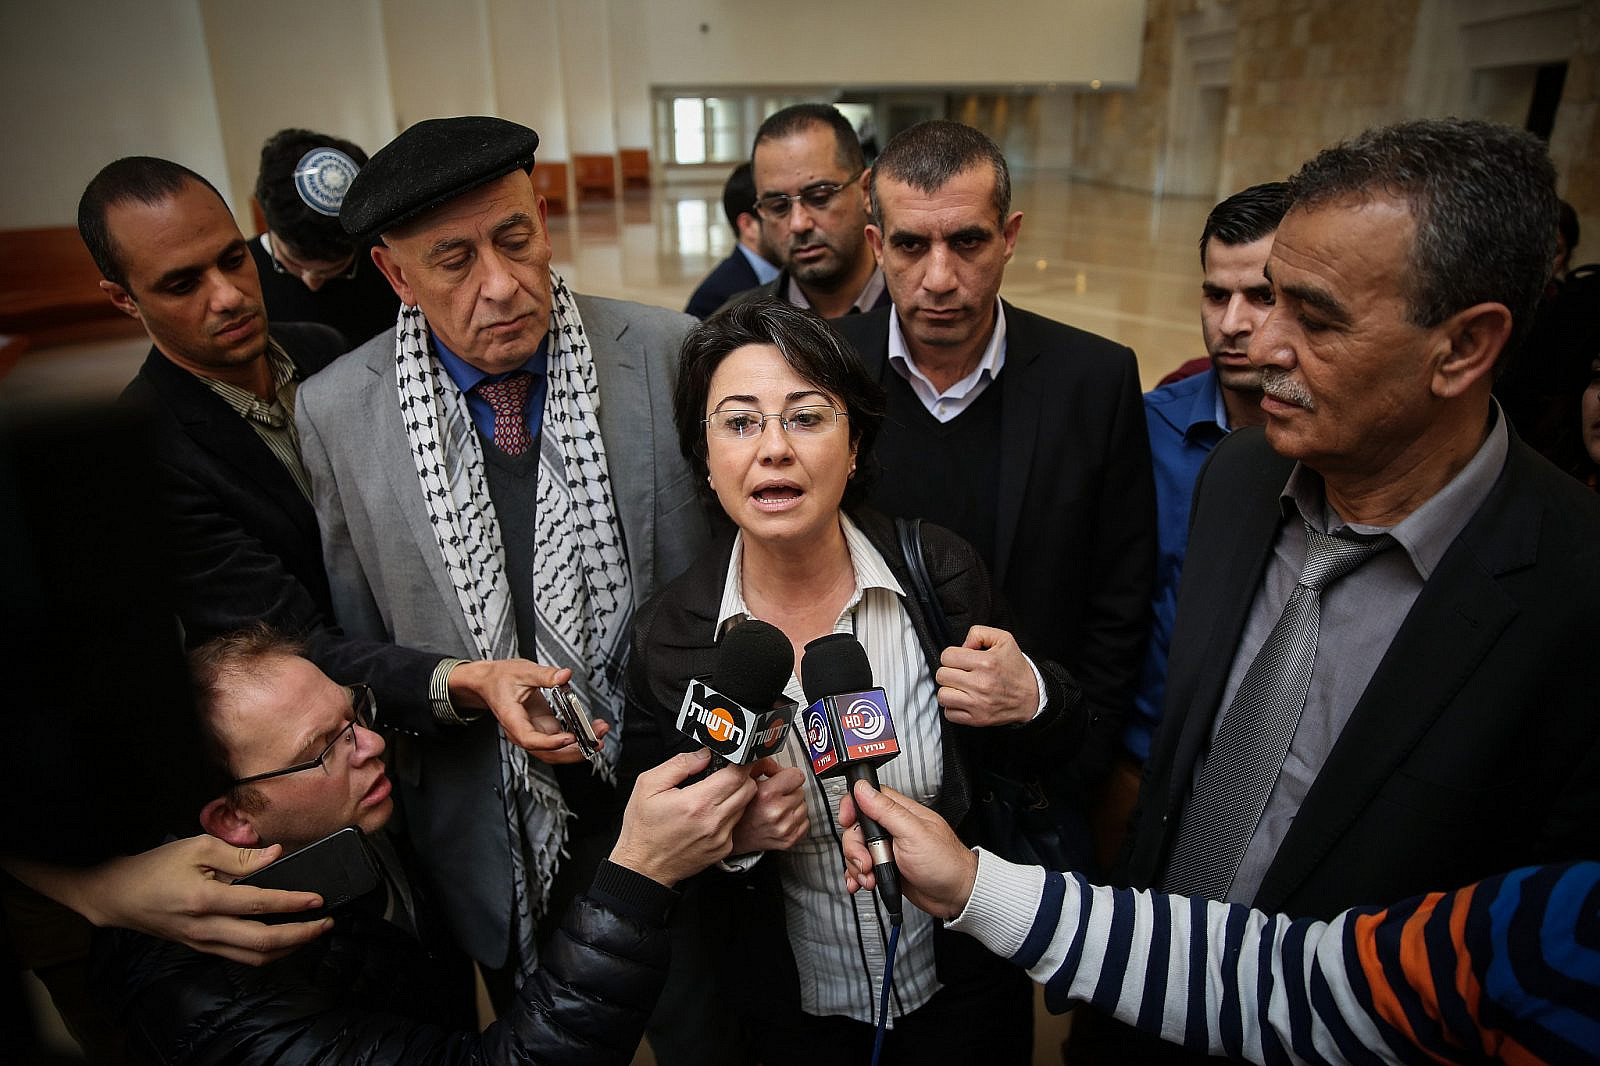 Arab Knesset member Haneen Zoabi speaks with press at the Supreme Court in Jerusalem where she appealed a decision by the Central Election Committee to disqualify her from running in the Israeli elections, February 17, 2015. (Hadas Parush / FLASH90)